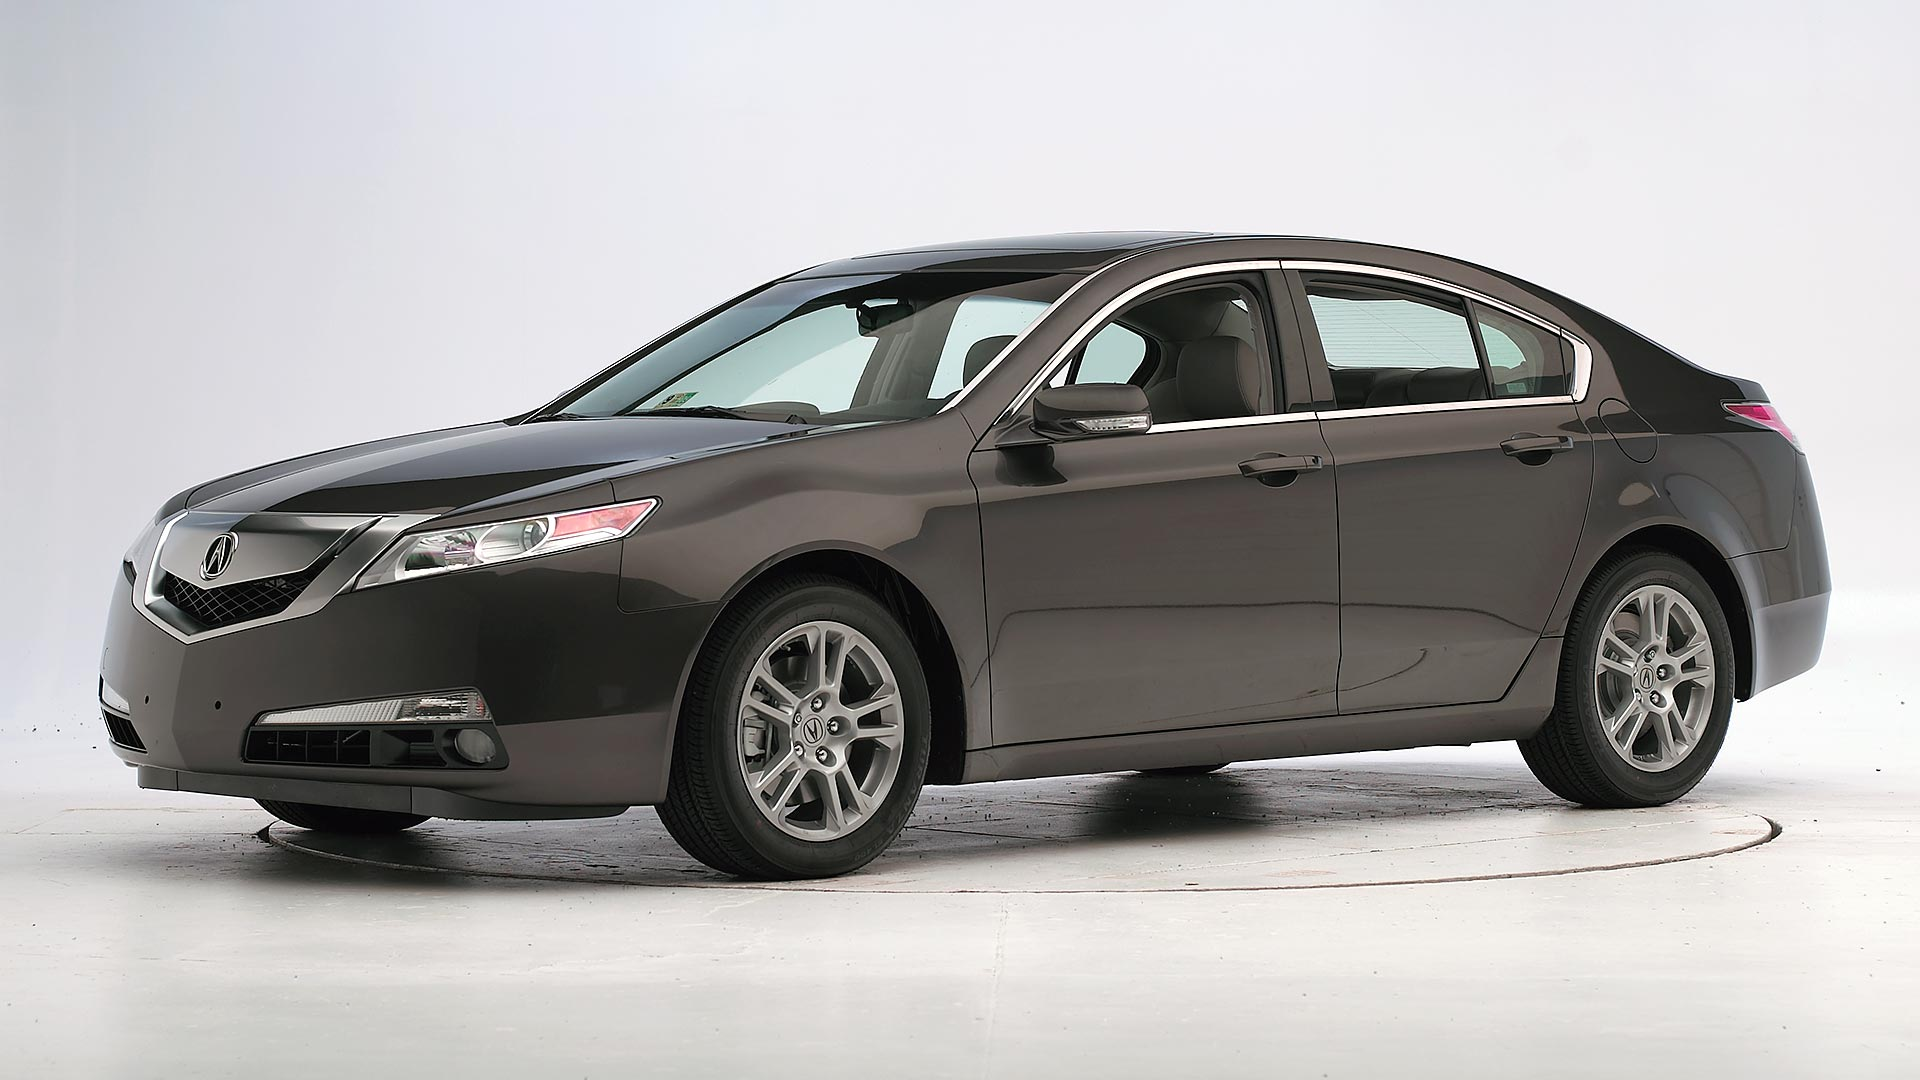 2010 Acura TL 4-door sedan